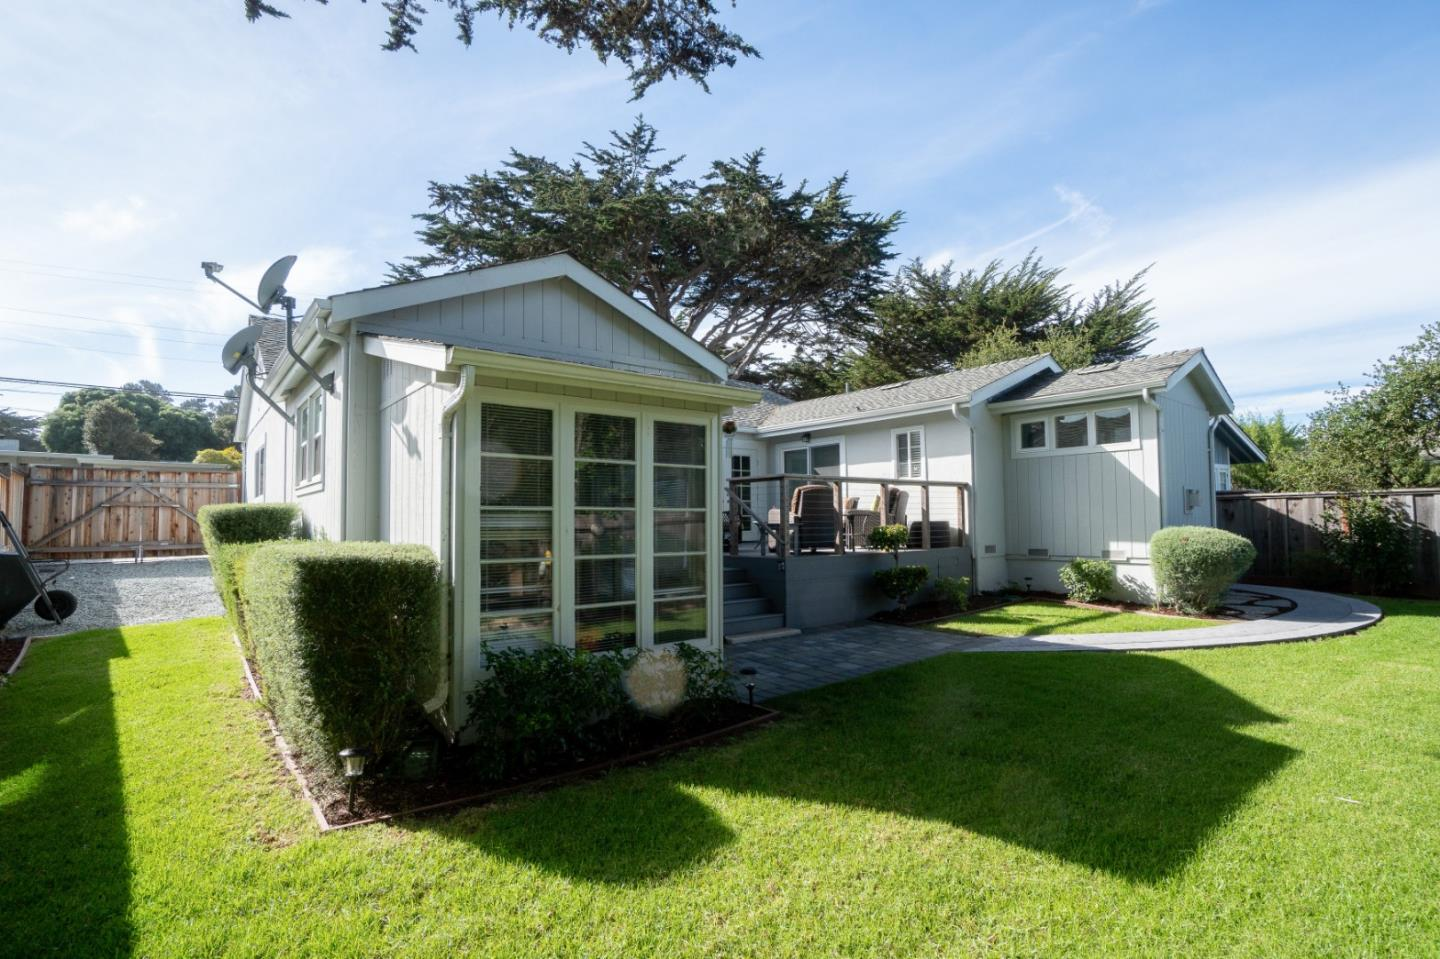 Property for sale at 1118 RIPPLE AVE, Pacific Grove,  CA 93950